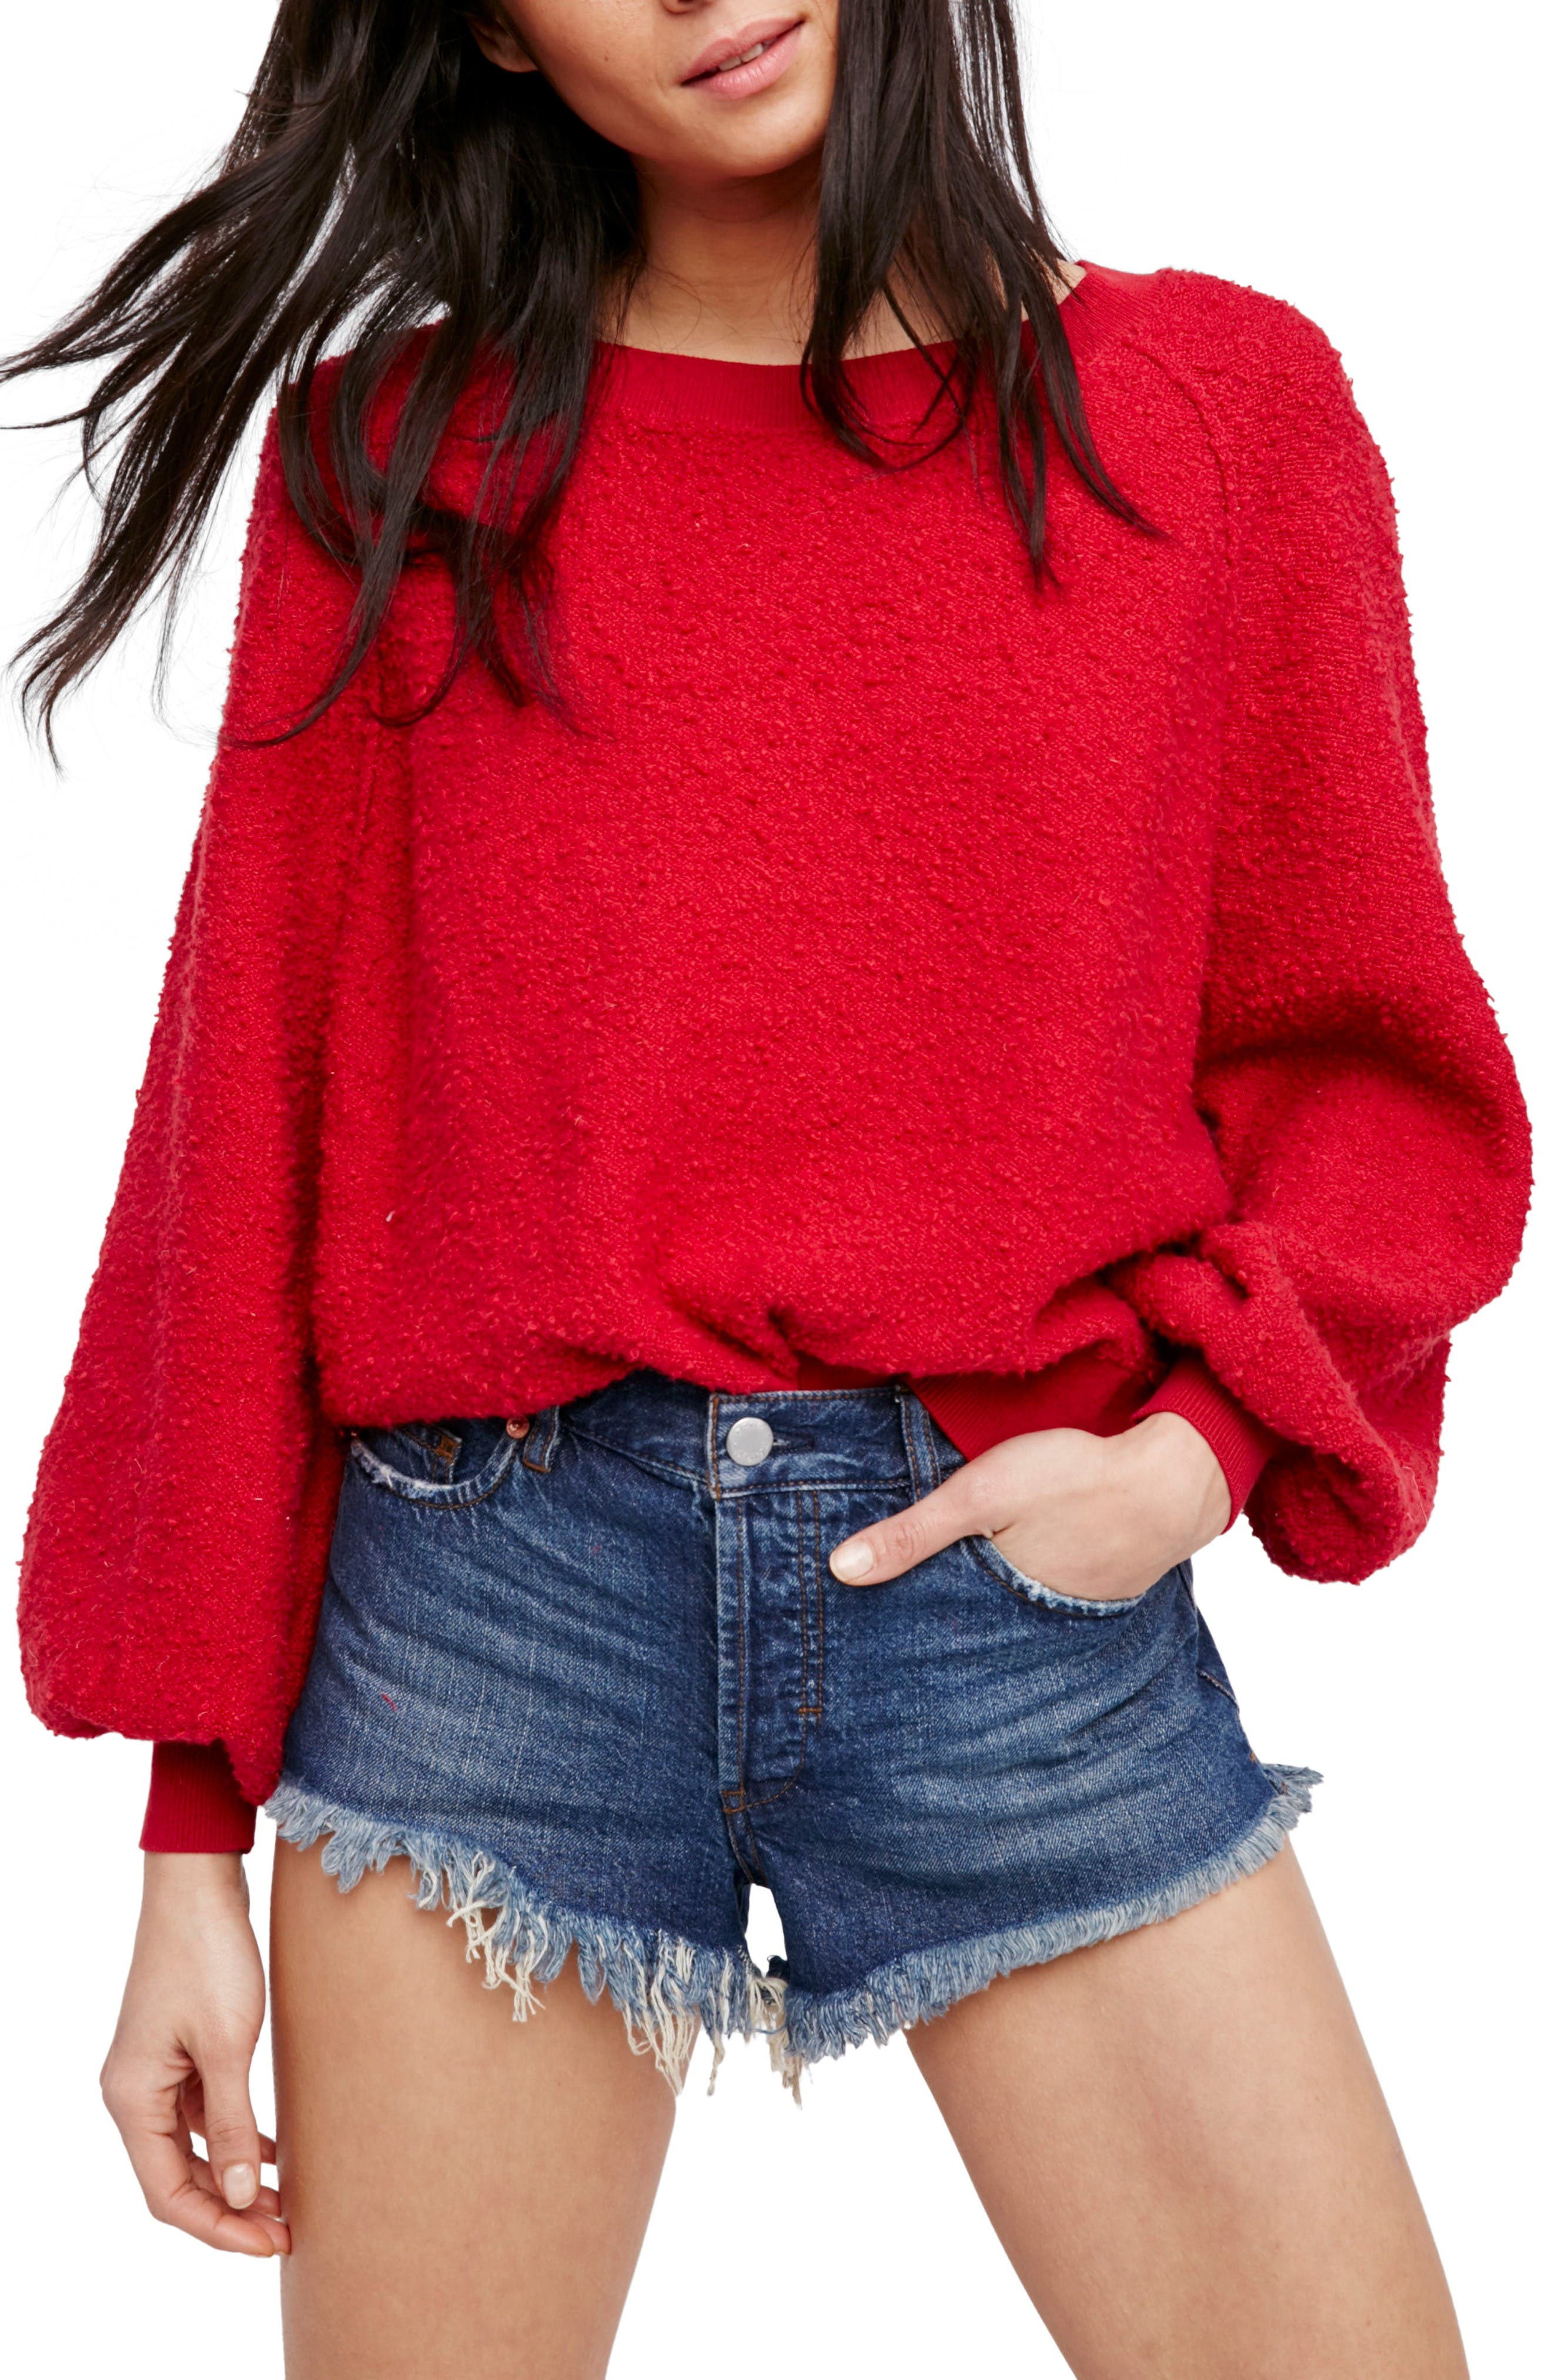 Alternate Image 1 Selected - Free People Found My Friend Sweatshirt